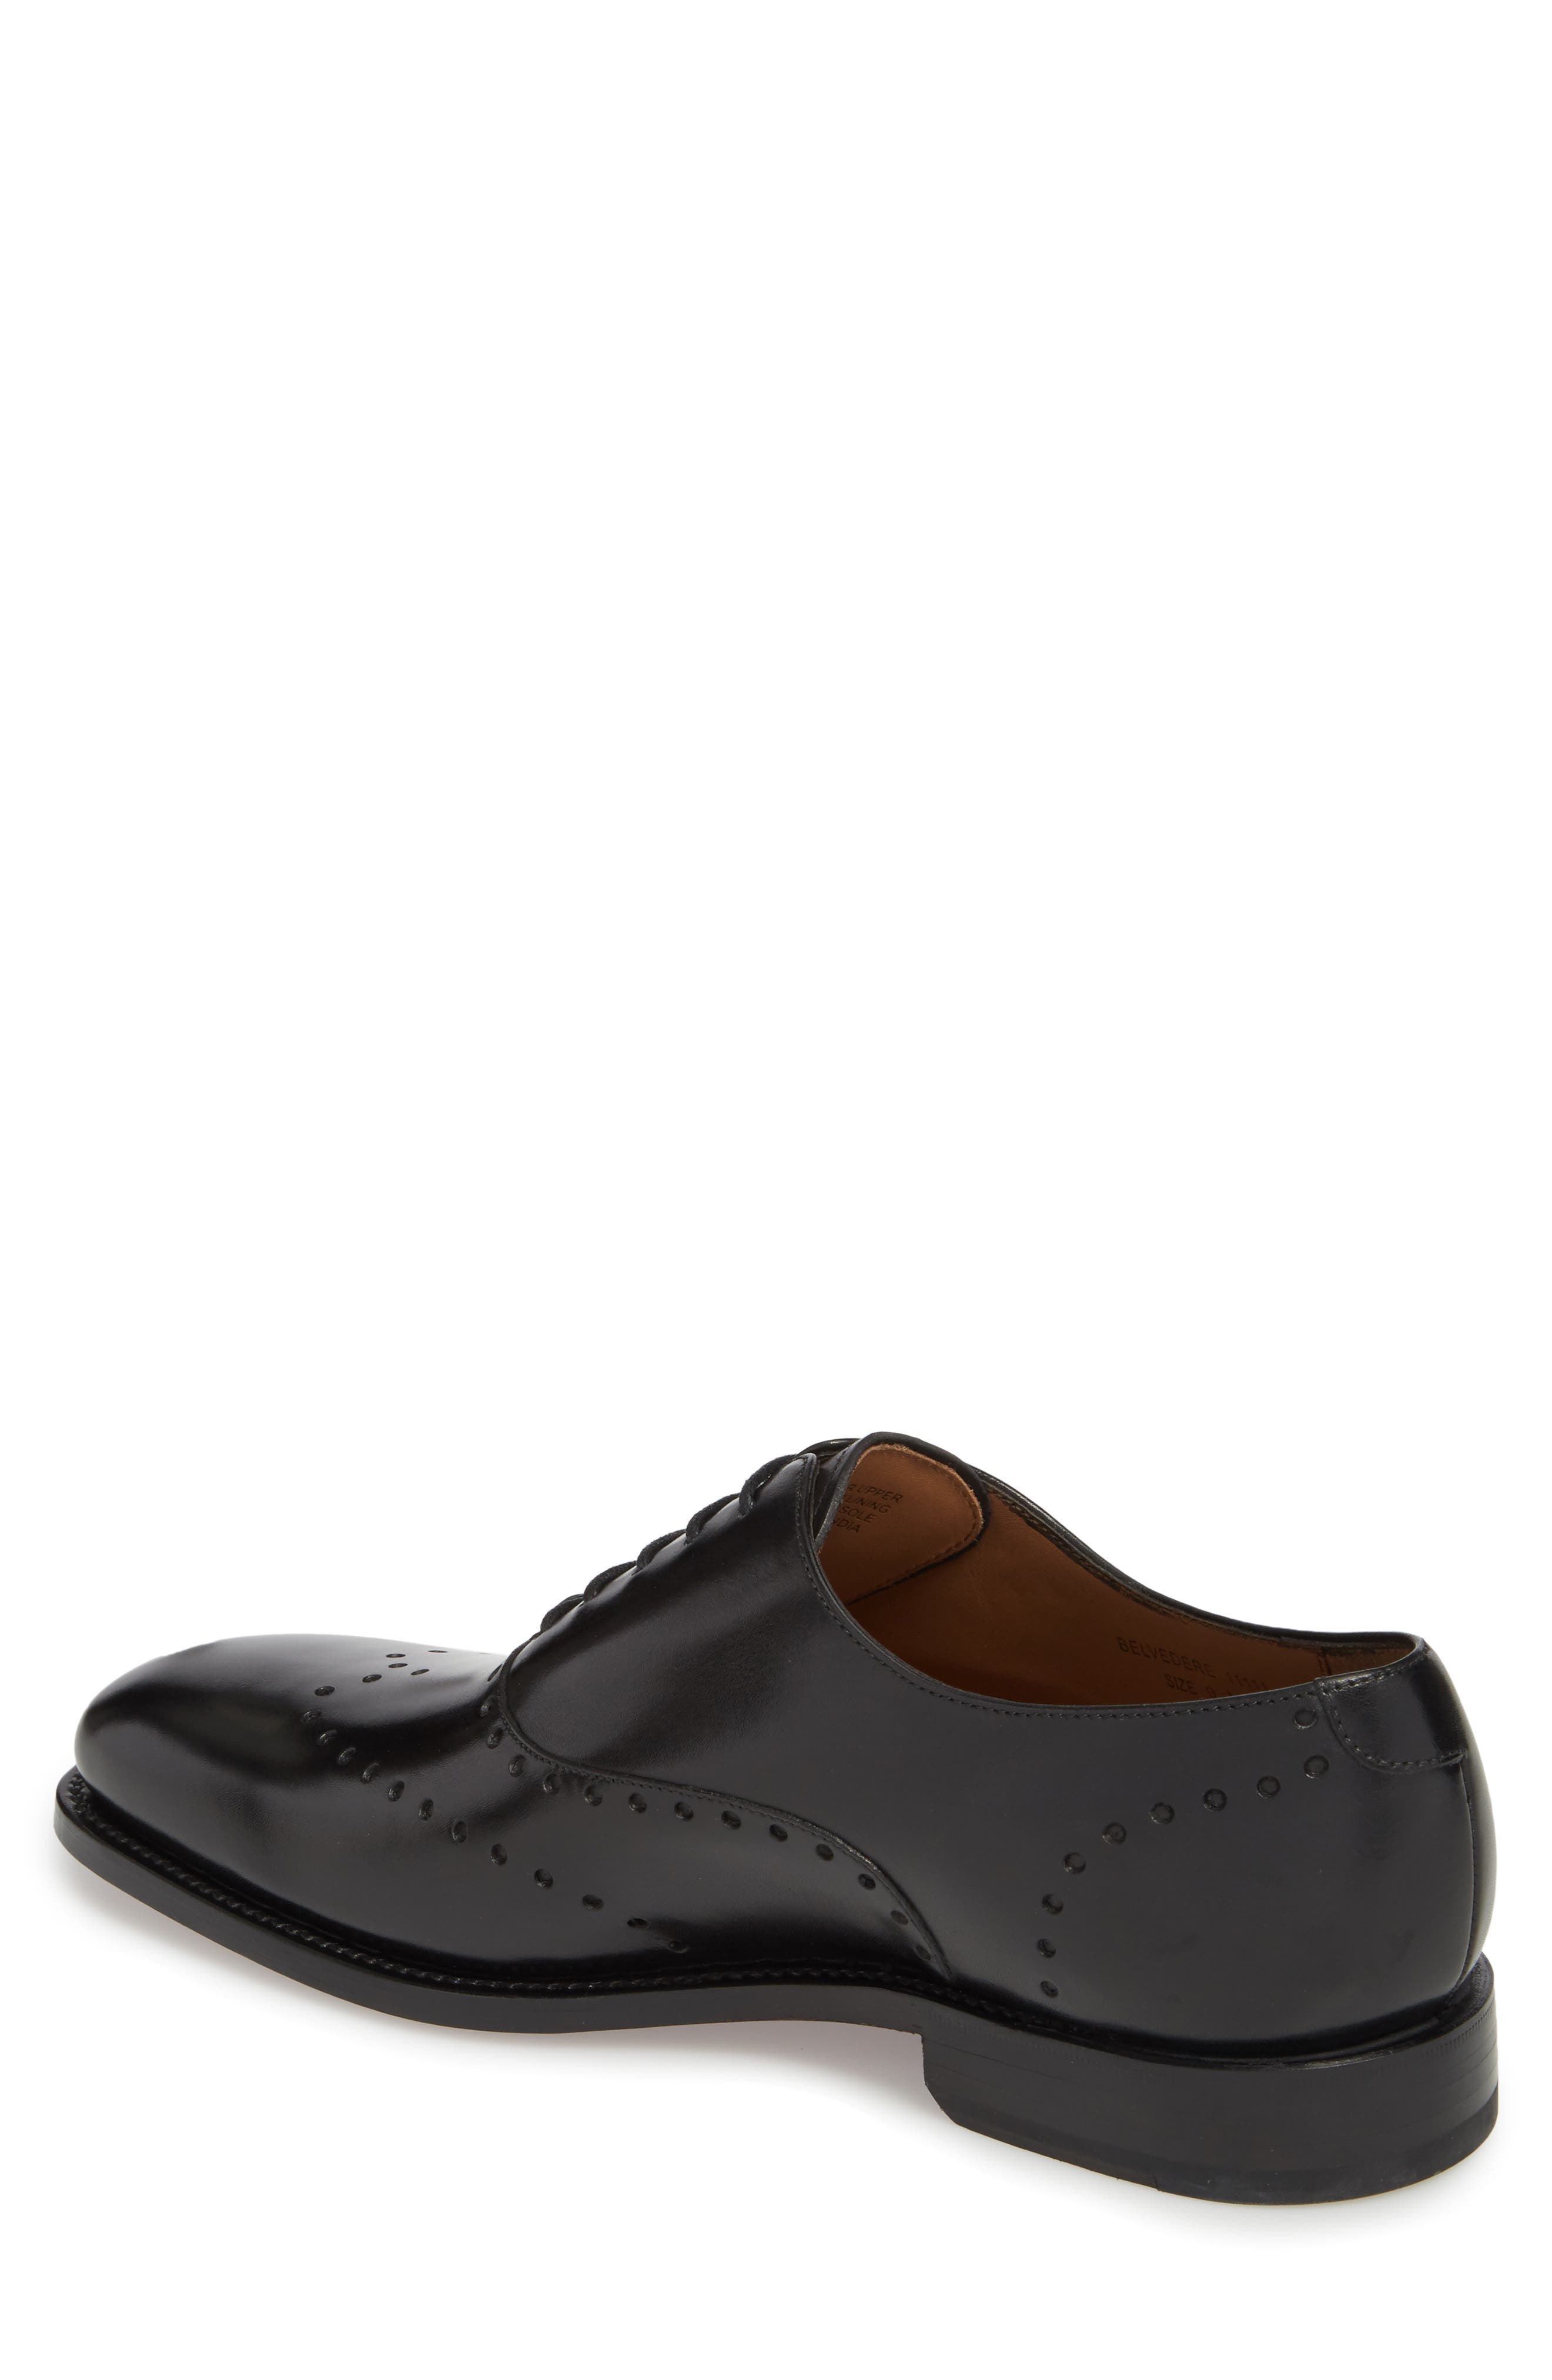 Belvedere Perforated Wingtip Oxford,                             Alternate thumbnail 2, color,                             Black